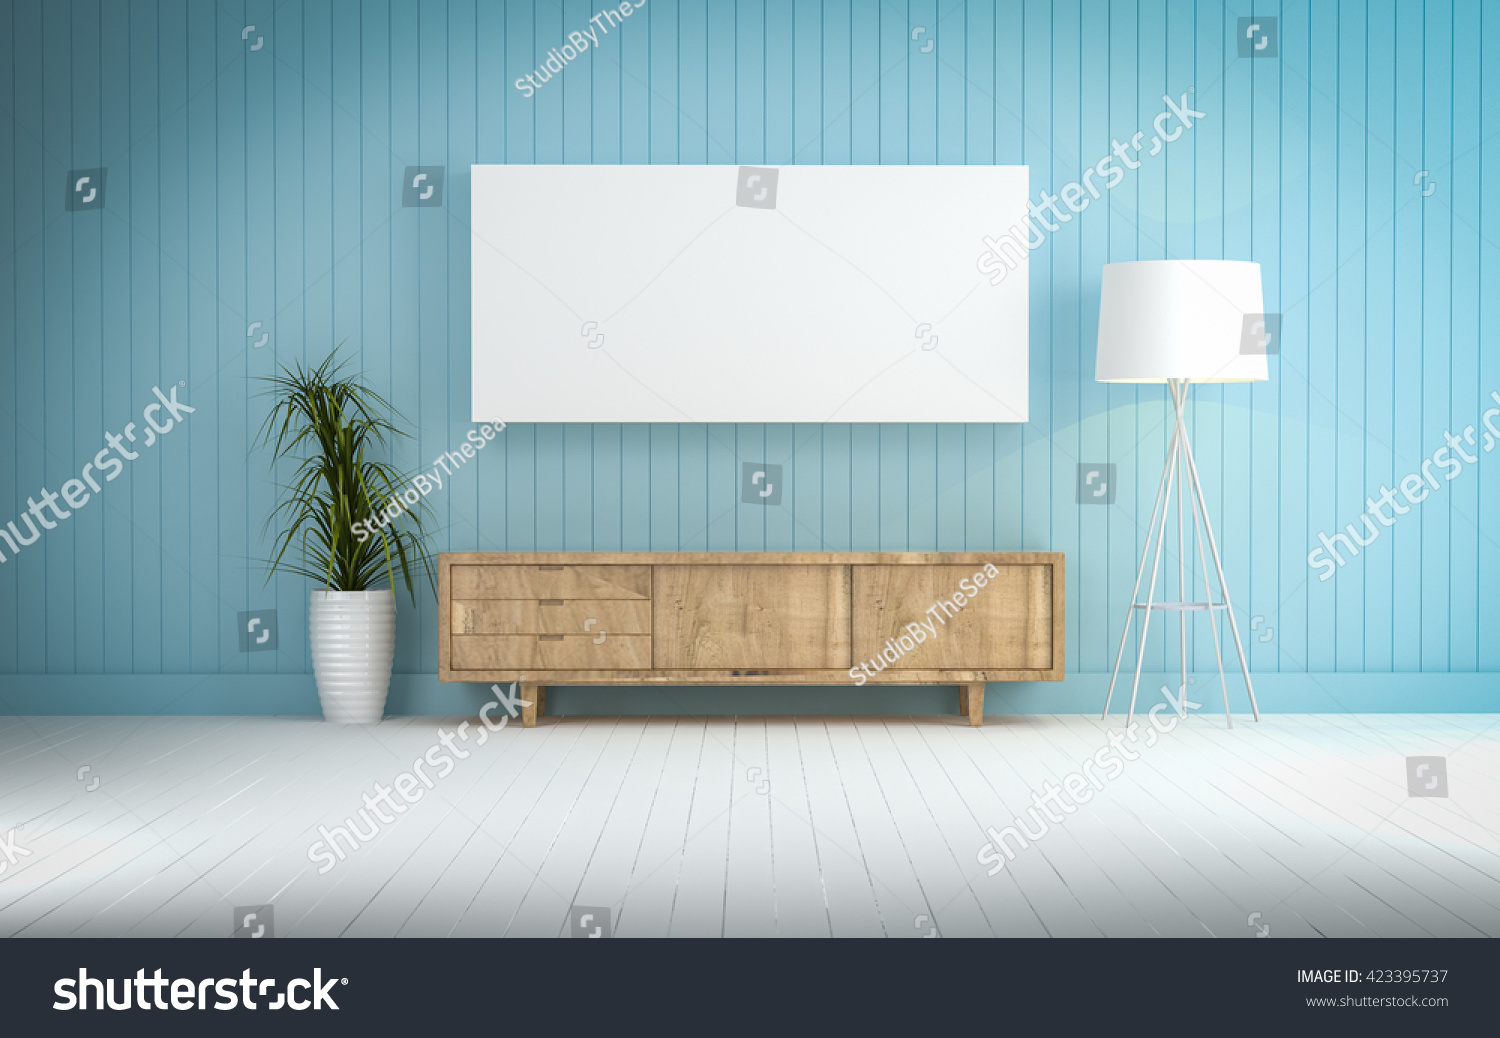 Wood Cabinet In Blue Wall Living Room 3d Rendering Stock